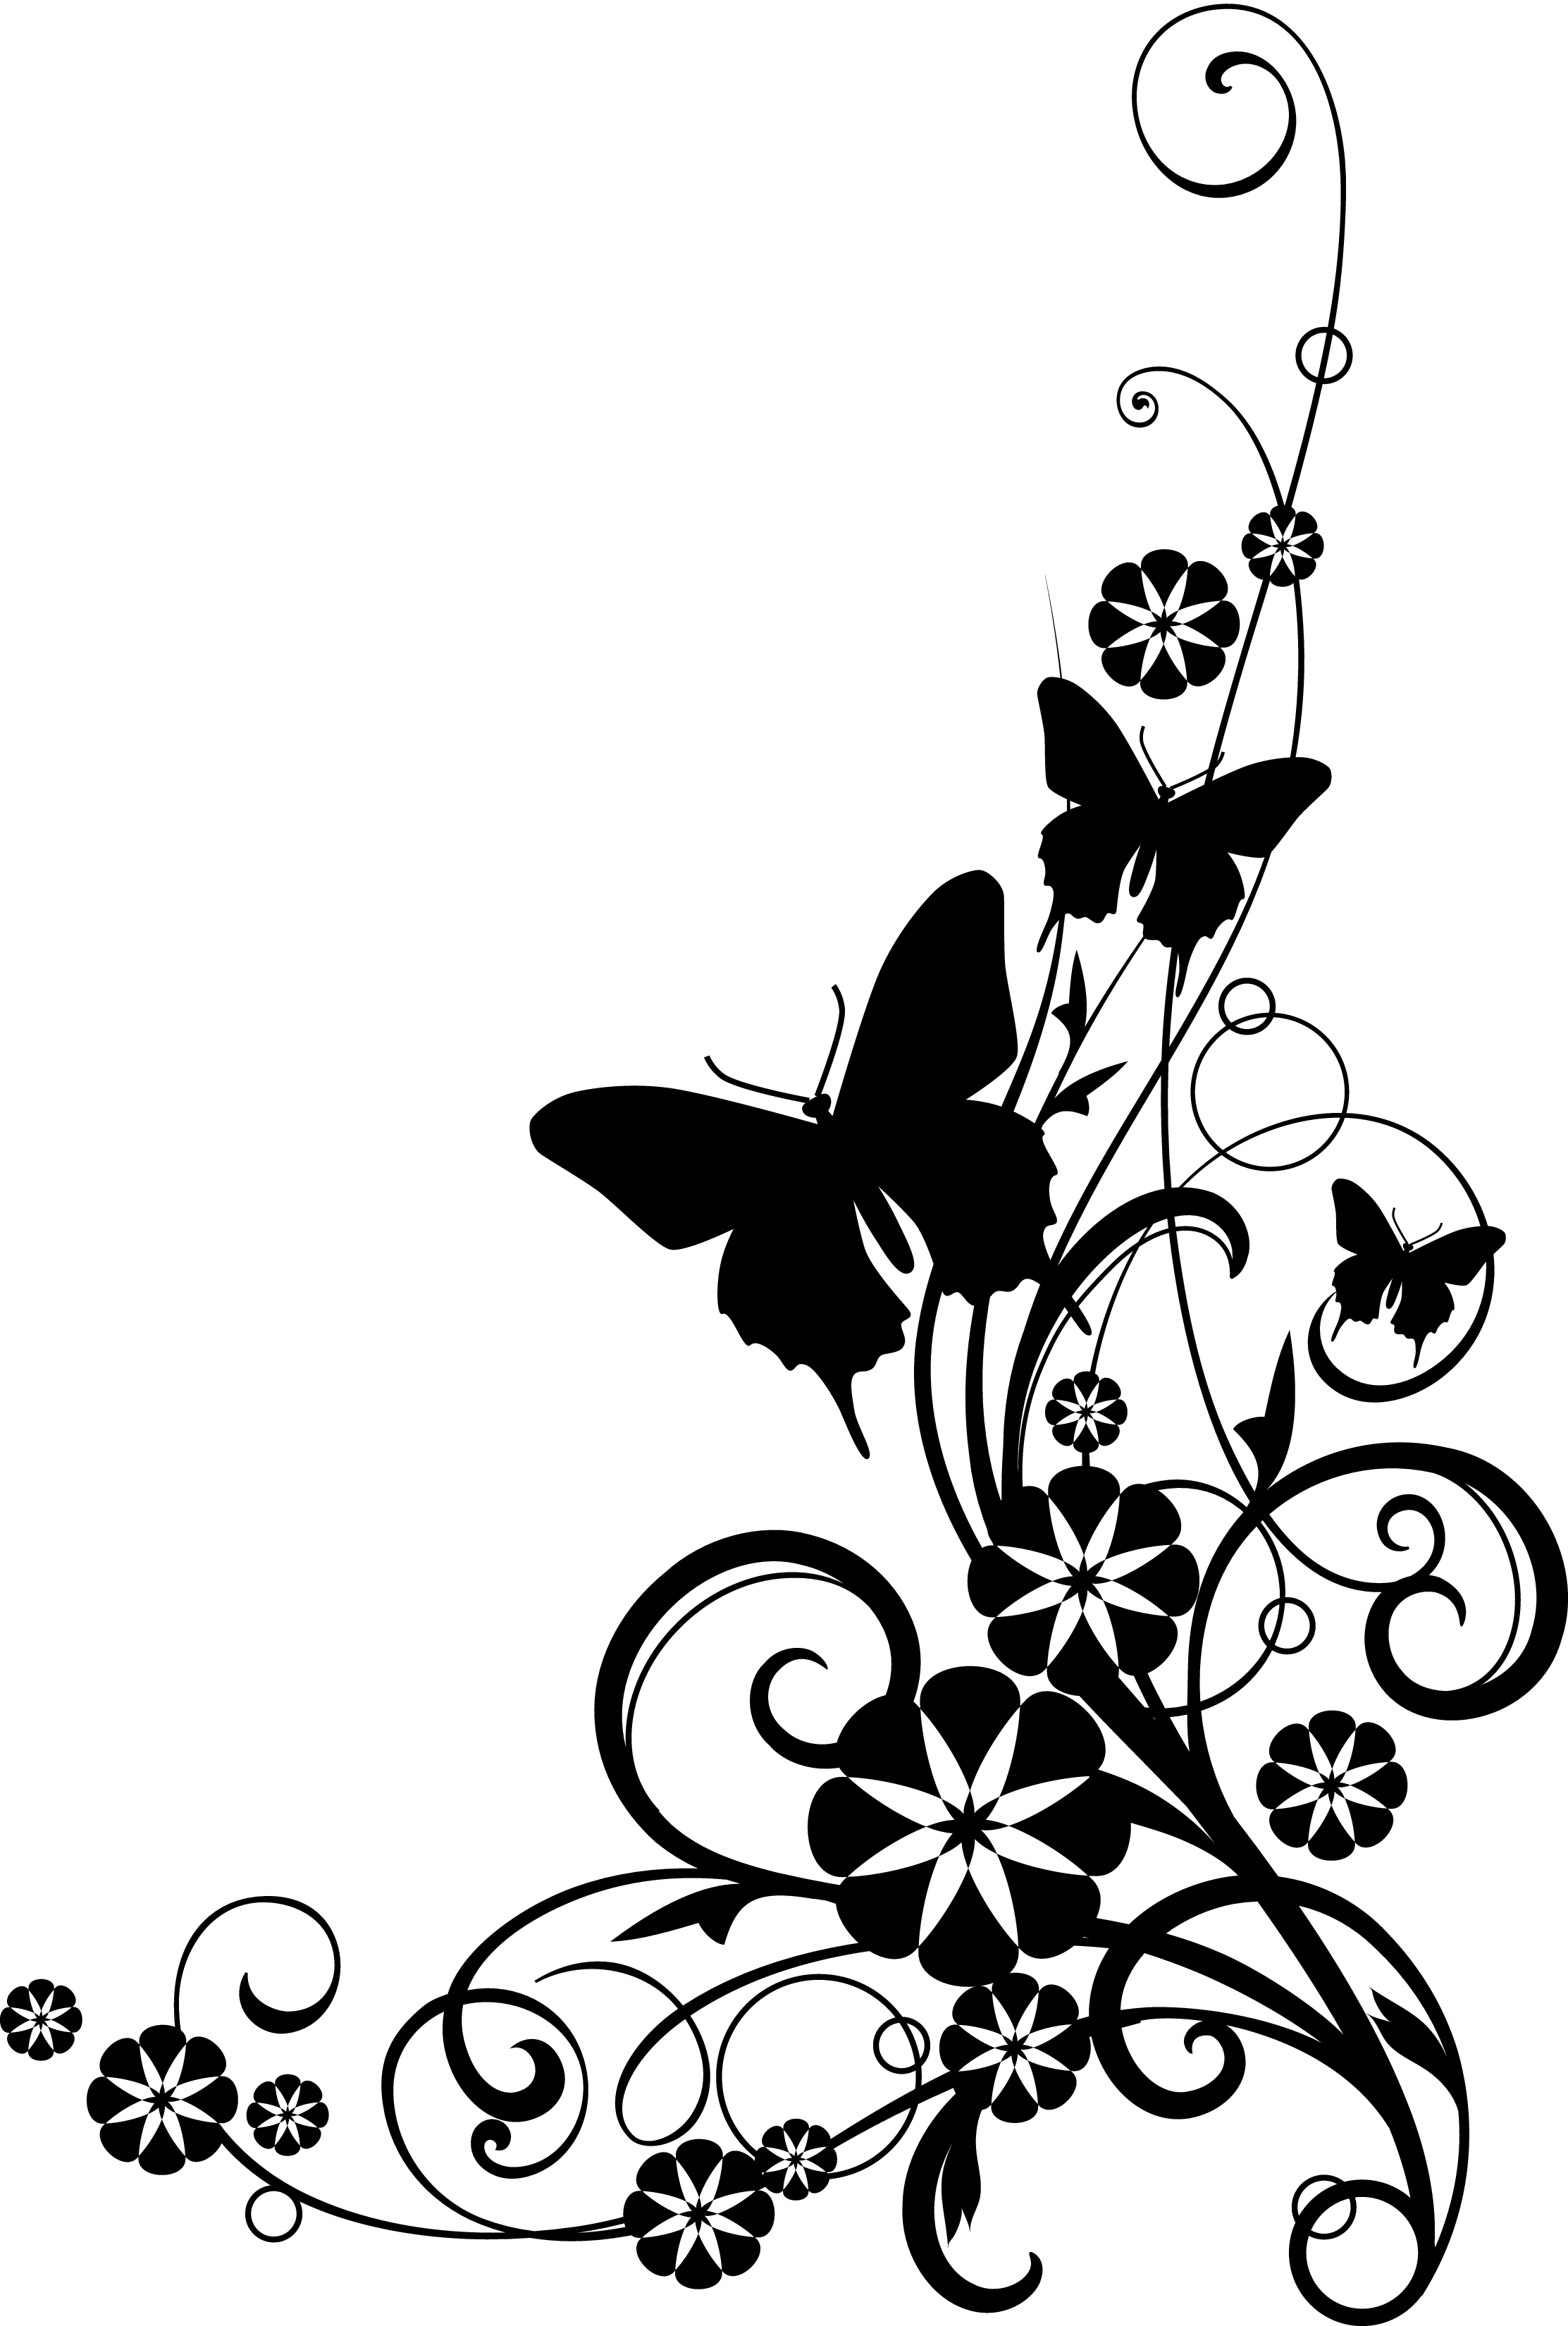 Black and white flower border clipart #41803 - Free Icons ...